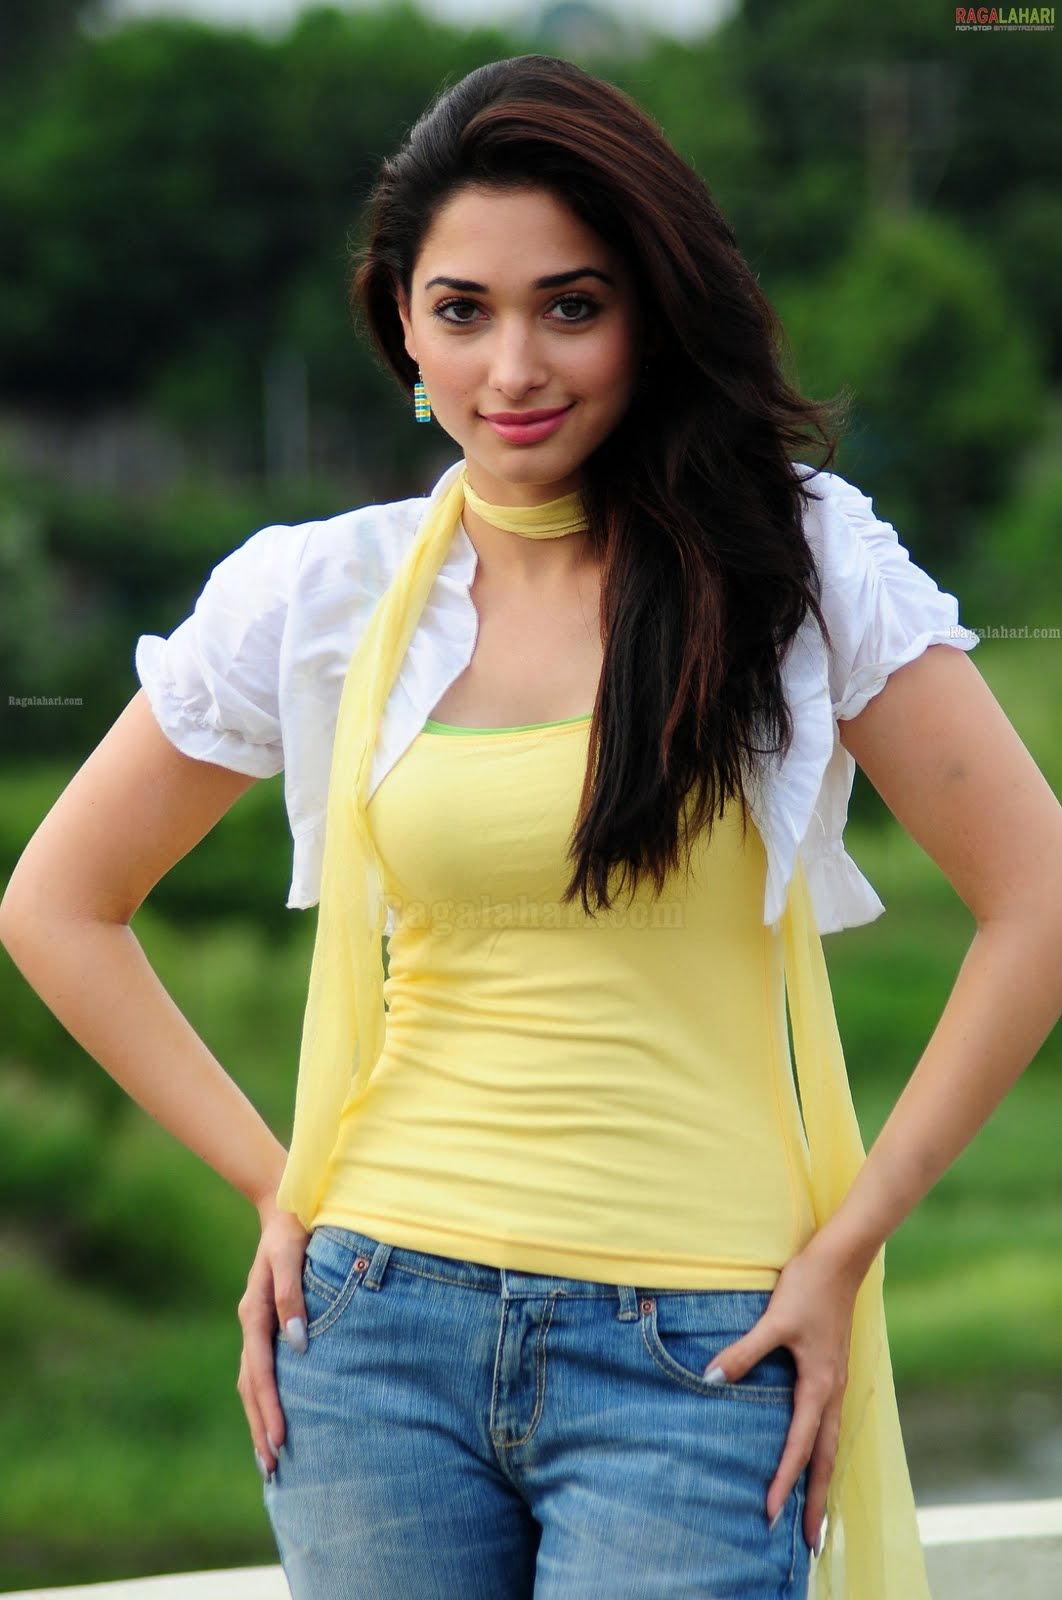 Indian Girls In Sexy Jeans